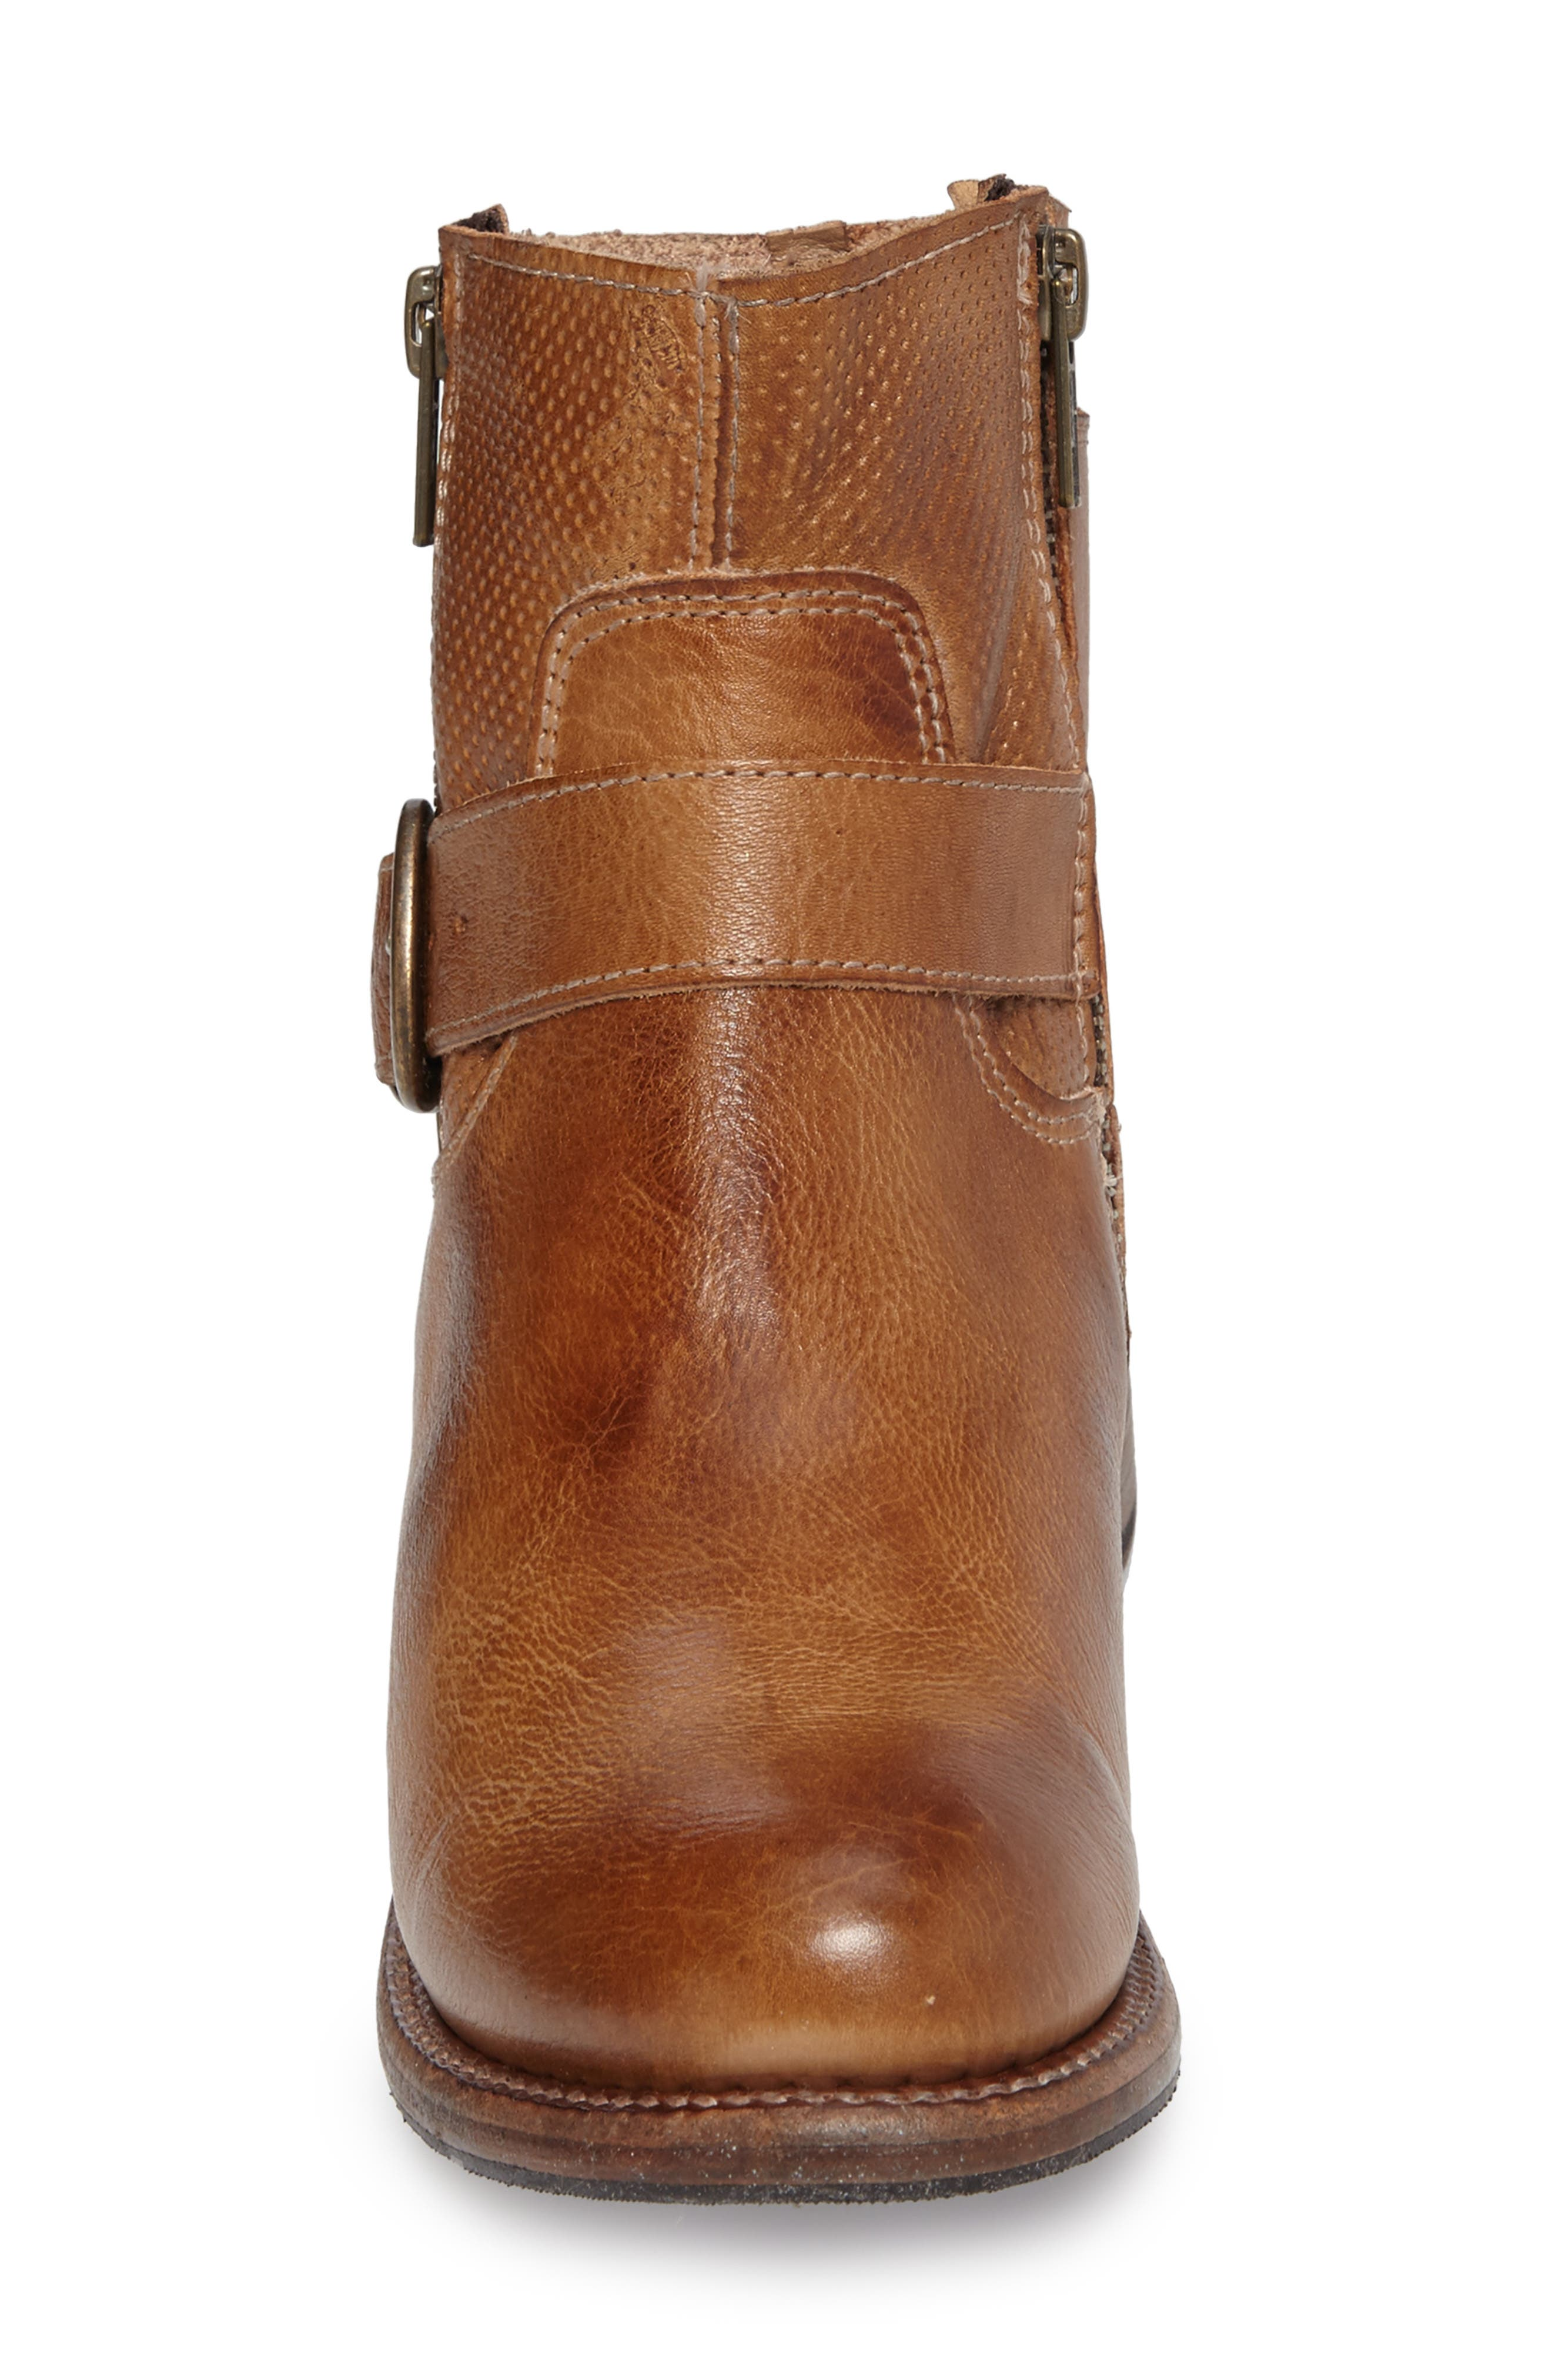 Becca Buckle Boot,                             Alternate thumbnail 4, color,                             Tan Rustic Leather